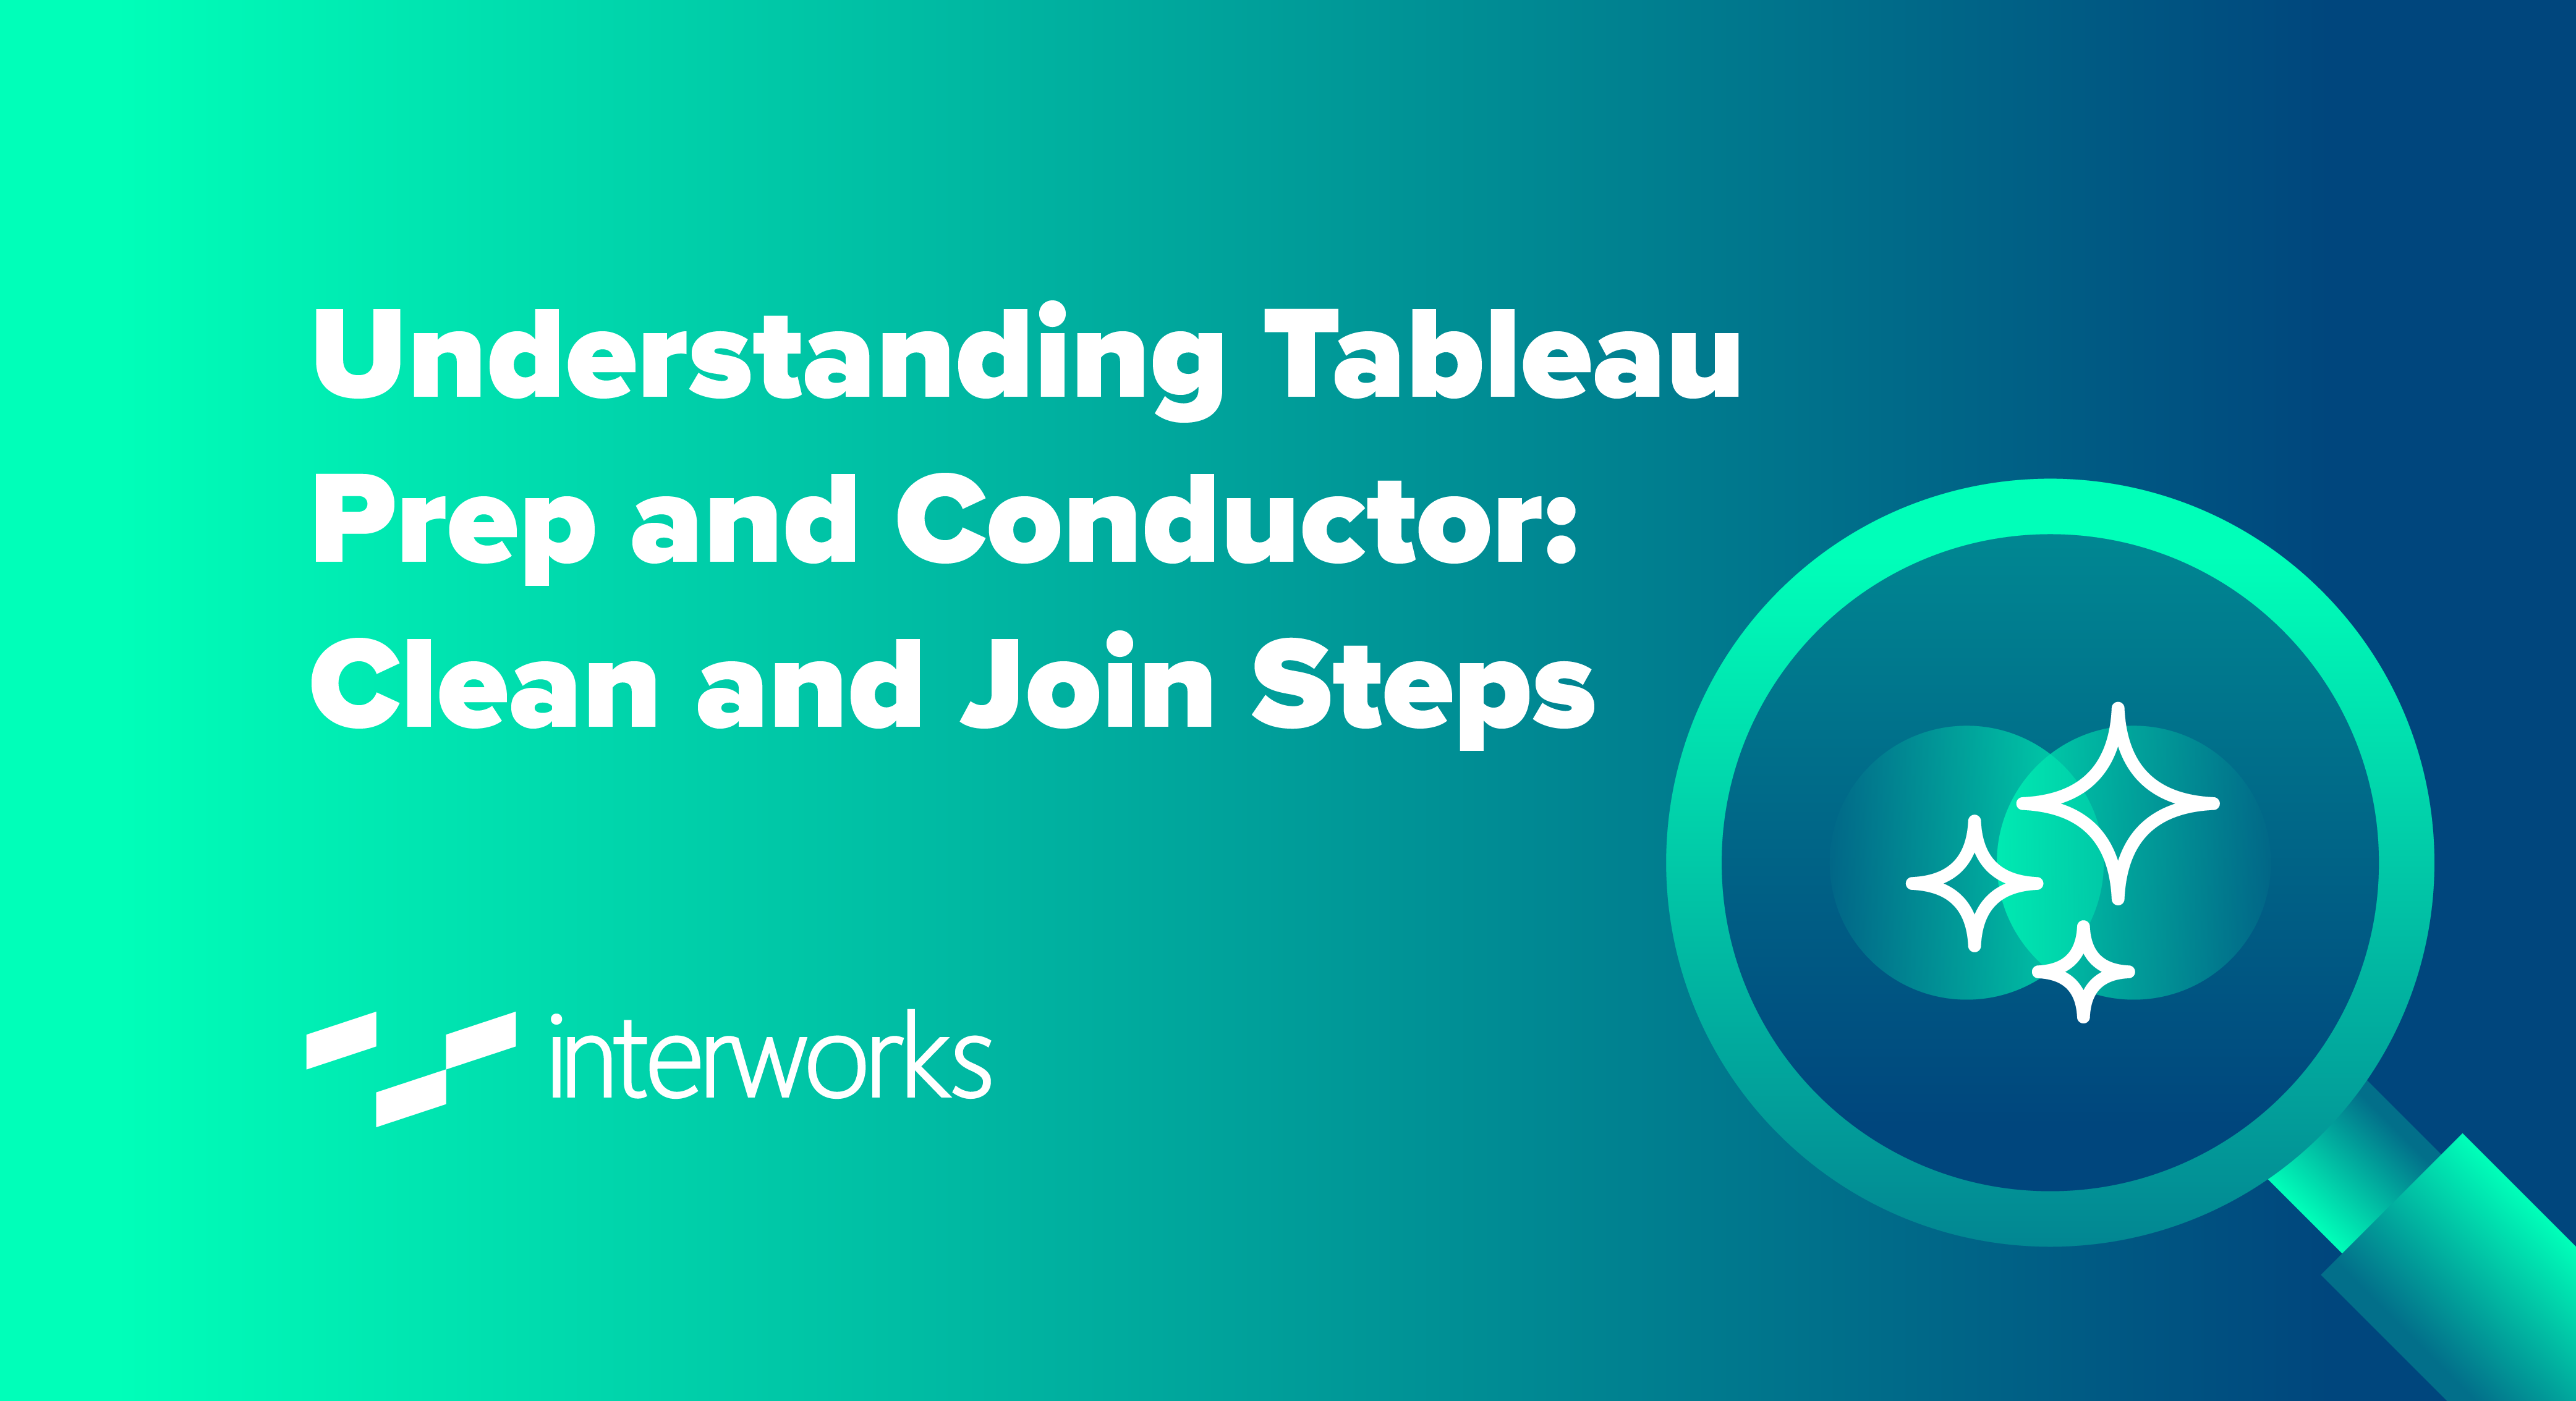 Understanding Tableau Prep and Conductor: Clean and Join Steps